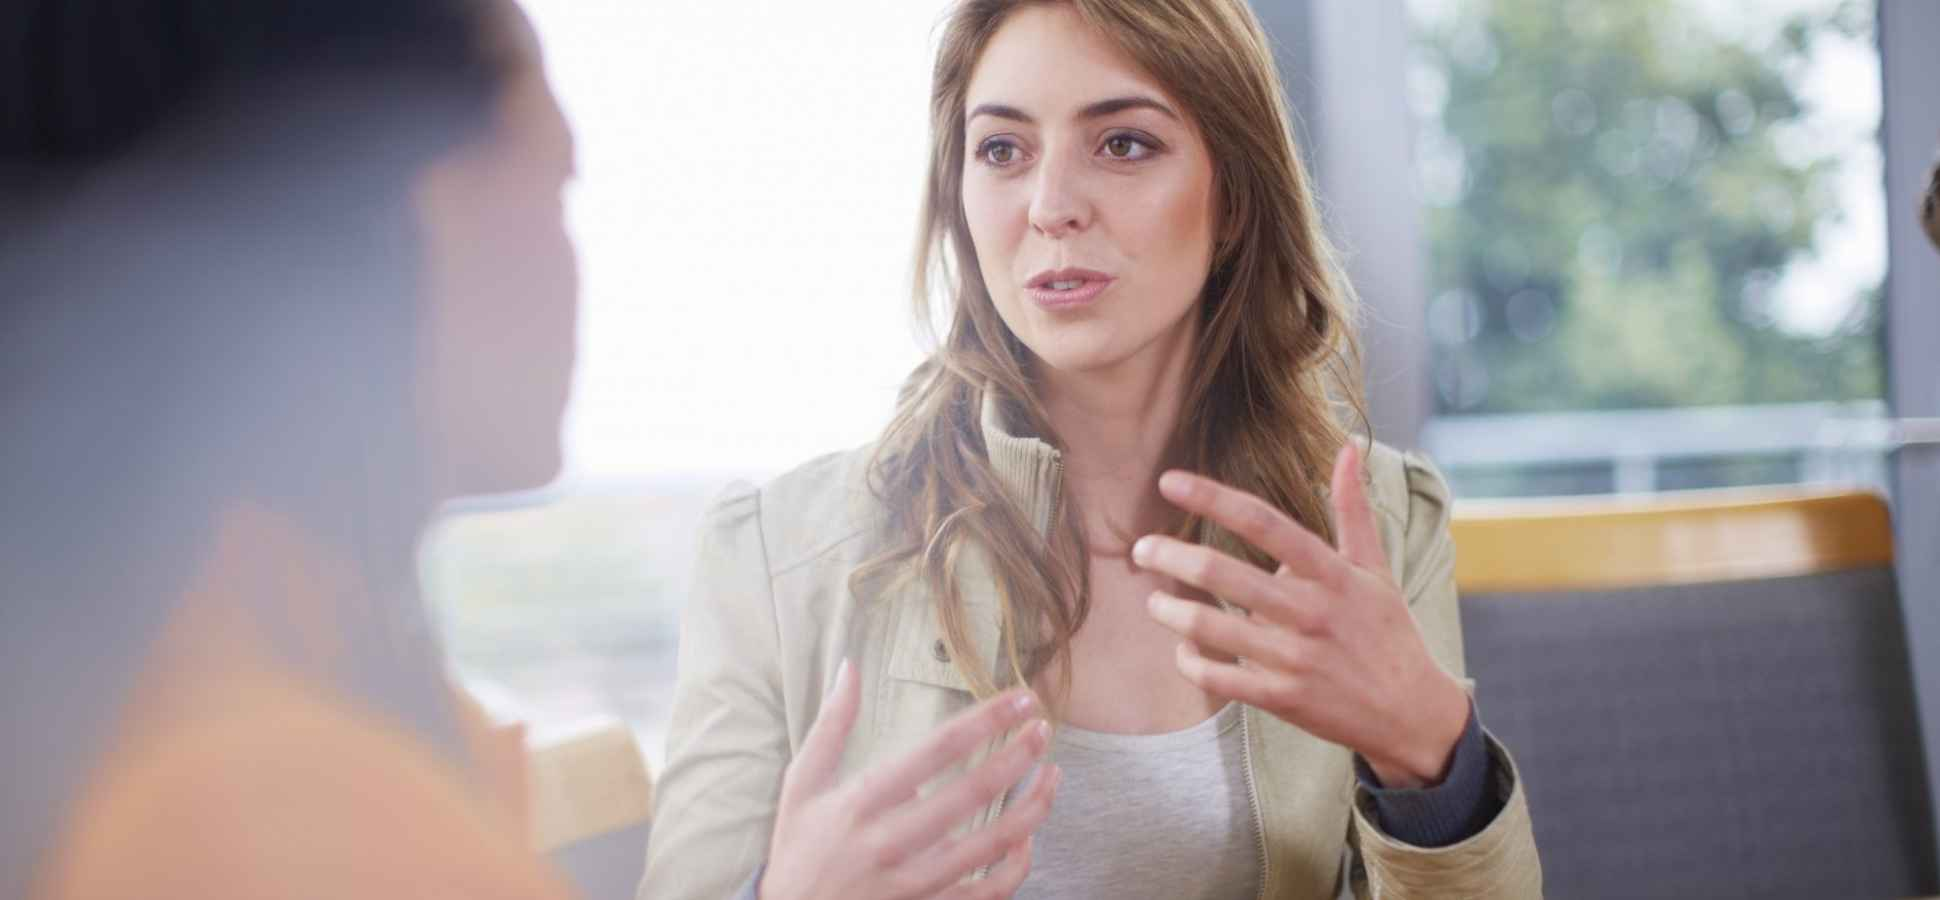 4 Tips to Help You Talk to Influential People (No Matter How Nervous You Are)